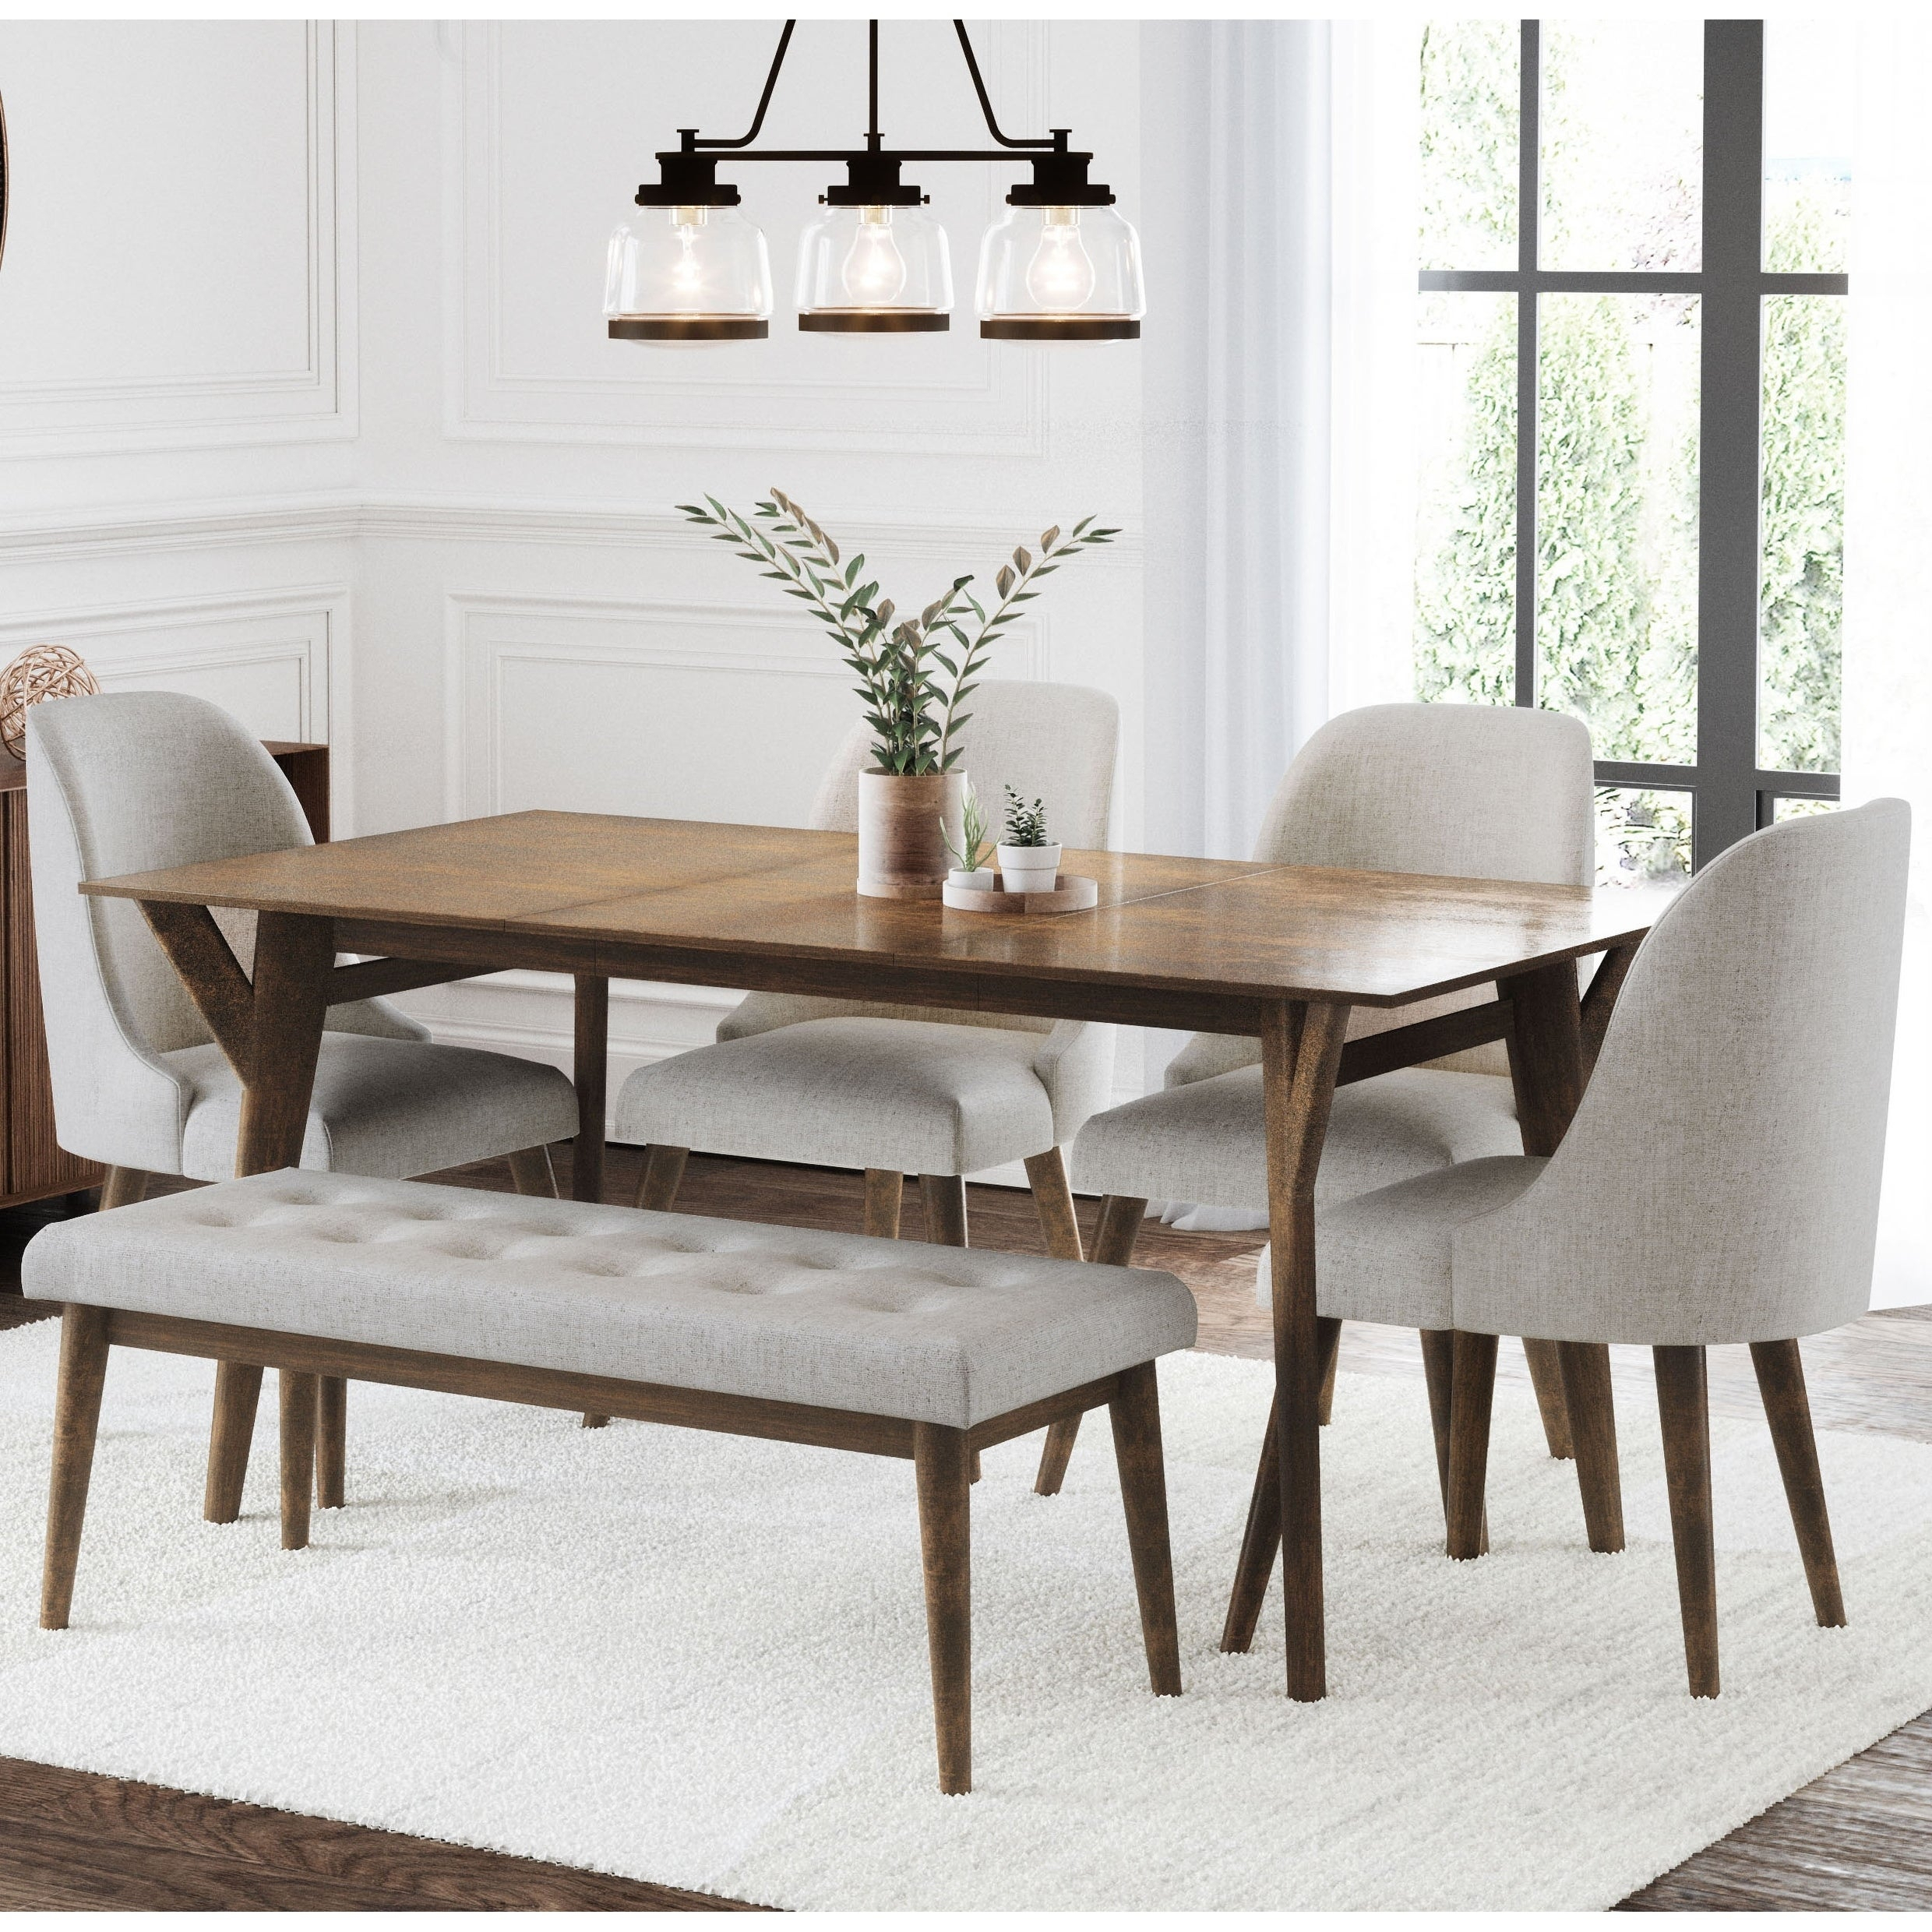 Buy 6 Piece Sets Kitchen & Dining Room Sets Online At Overstock Inside Most Popular Osterman 6 Piece Extendable Dining Sets (Set Of 6) (View 3 of 20)